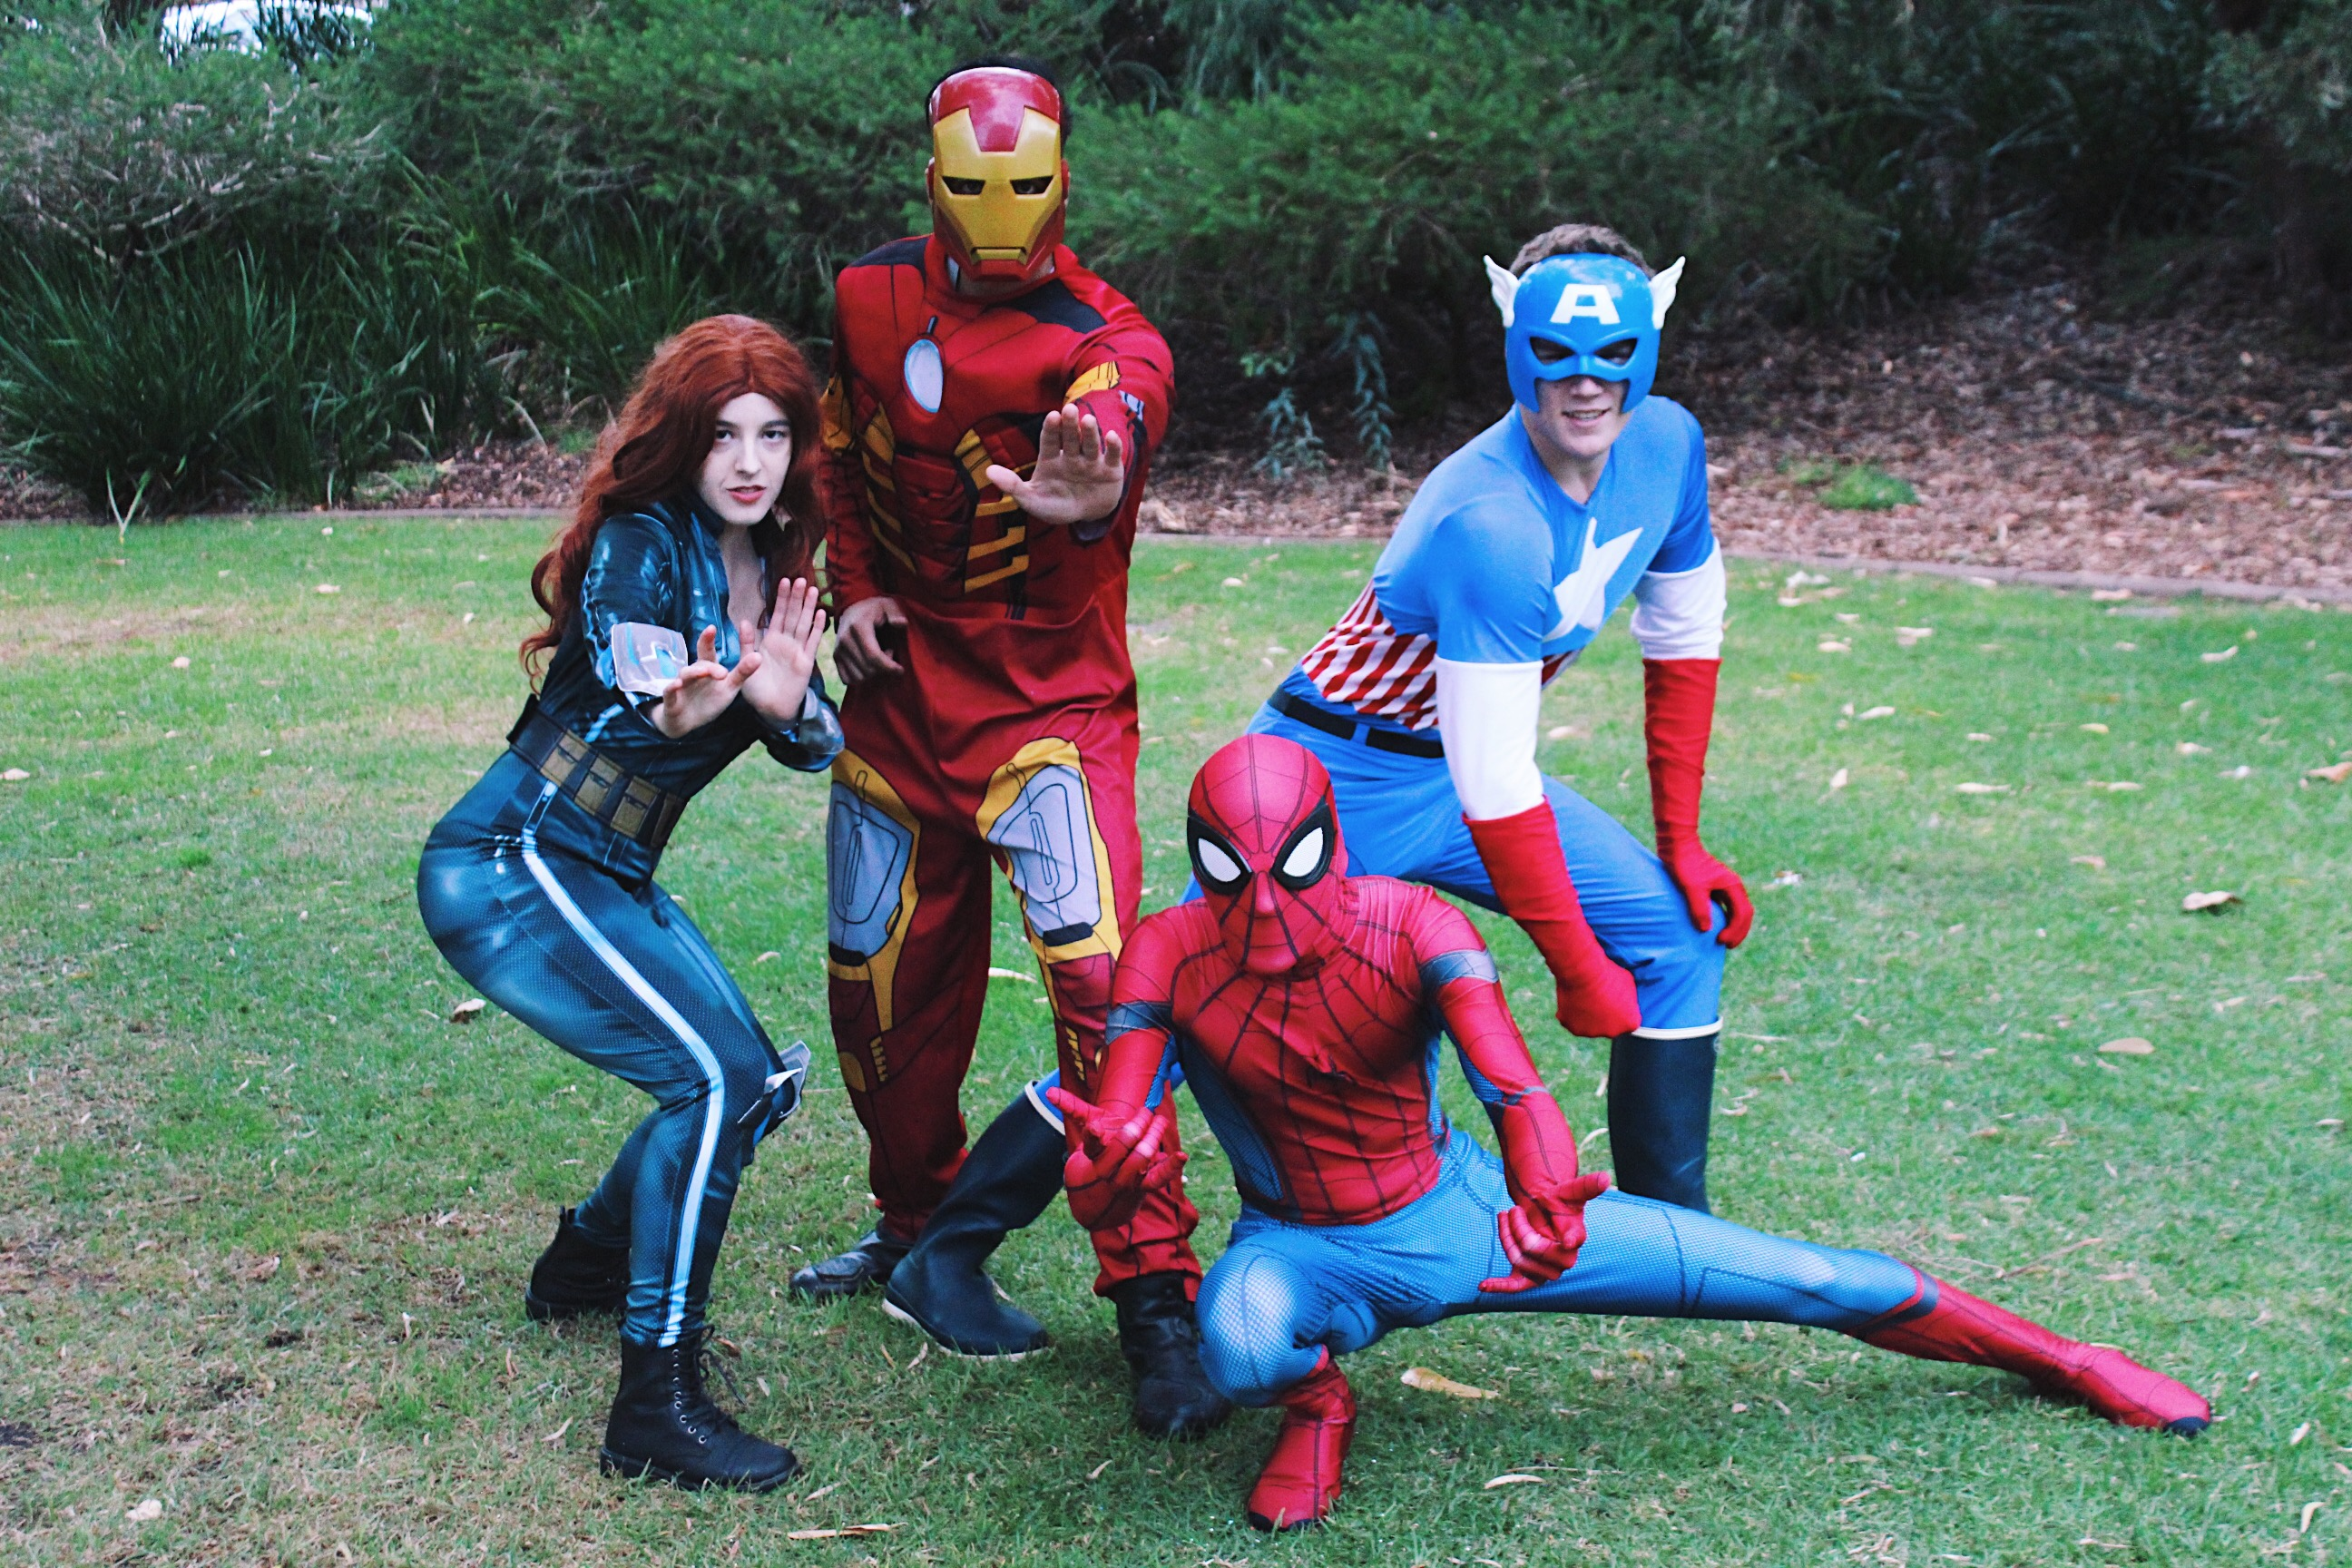 Superhero Black Widow Iron-Man Spider-Man Captain America Party Perth Parties Kids Remember